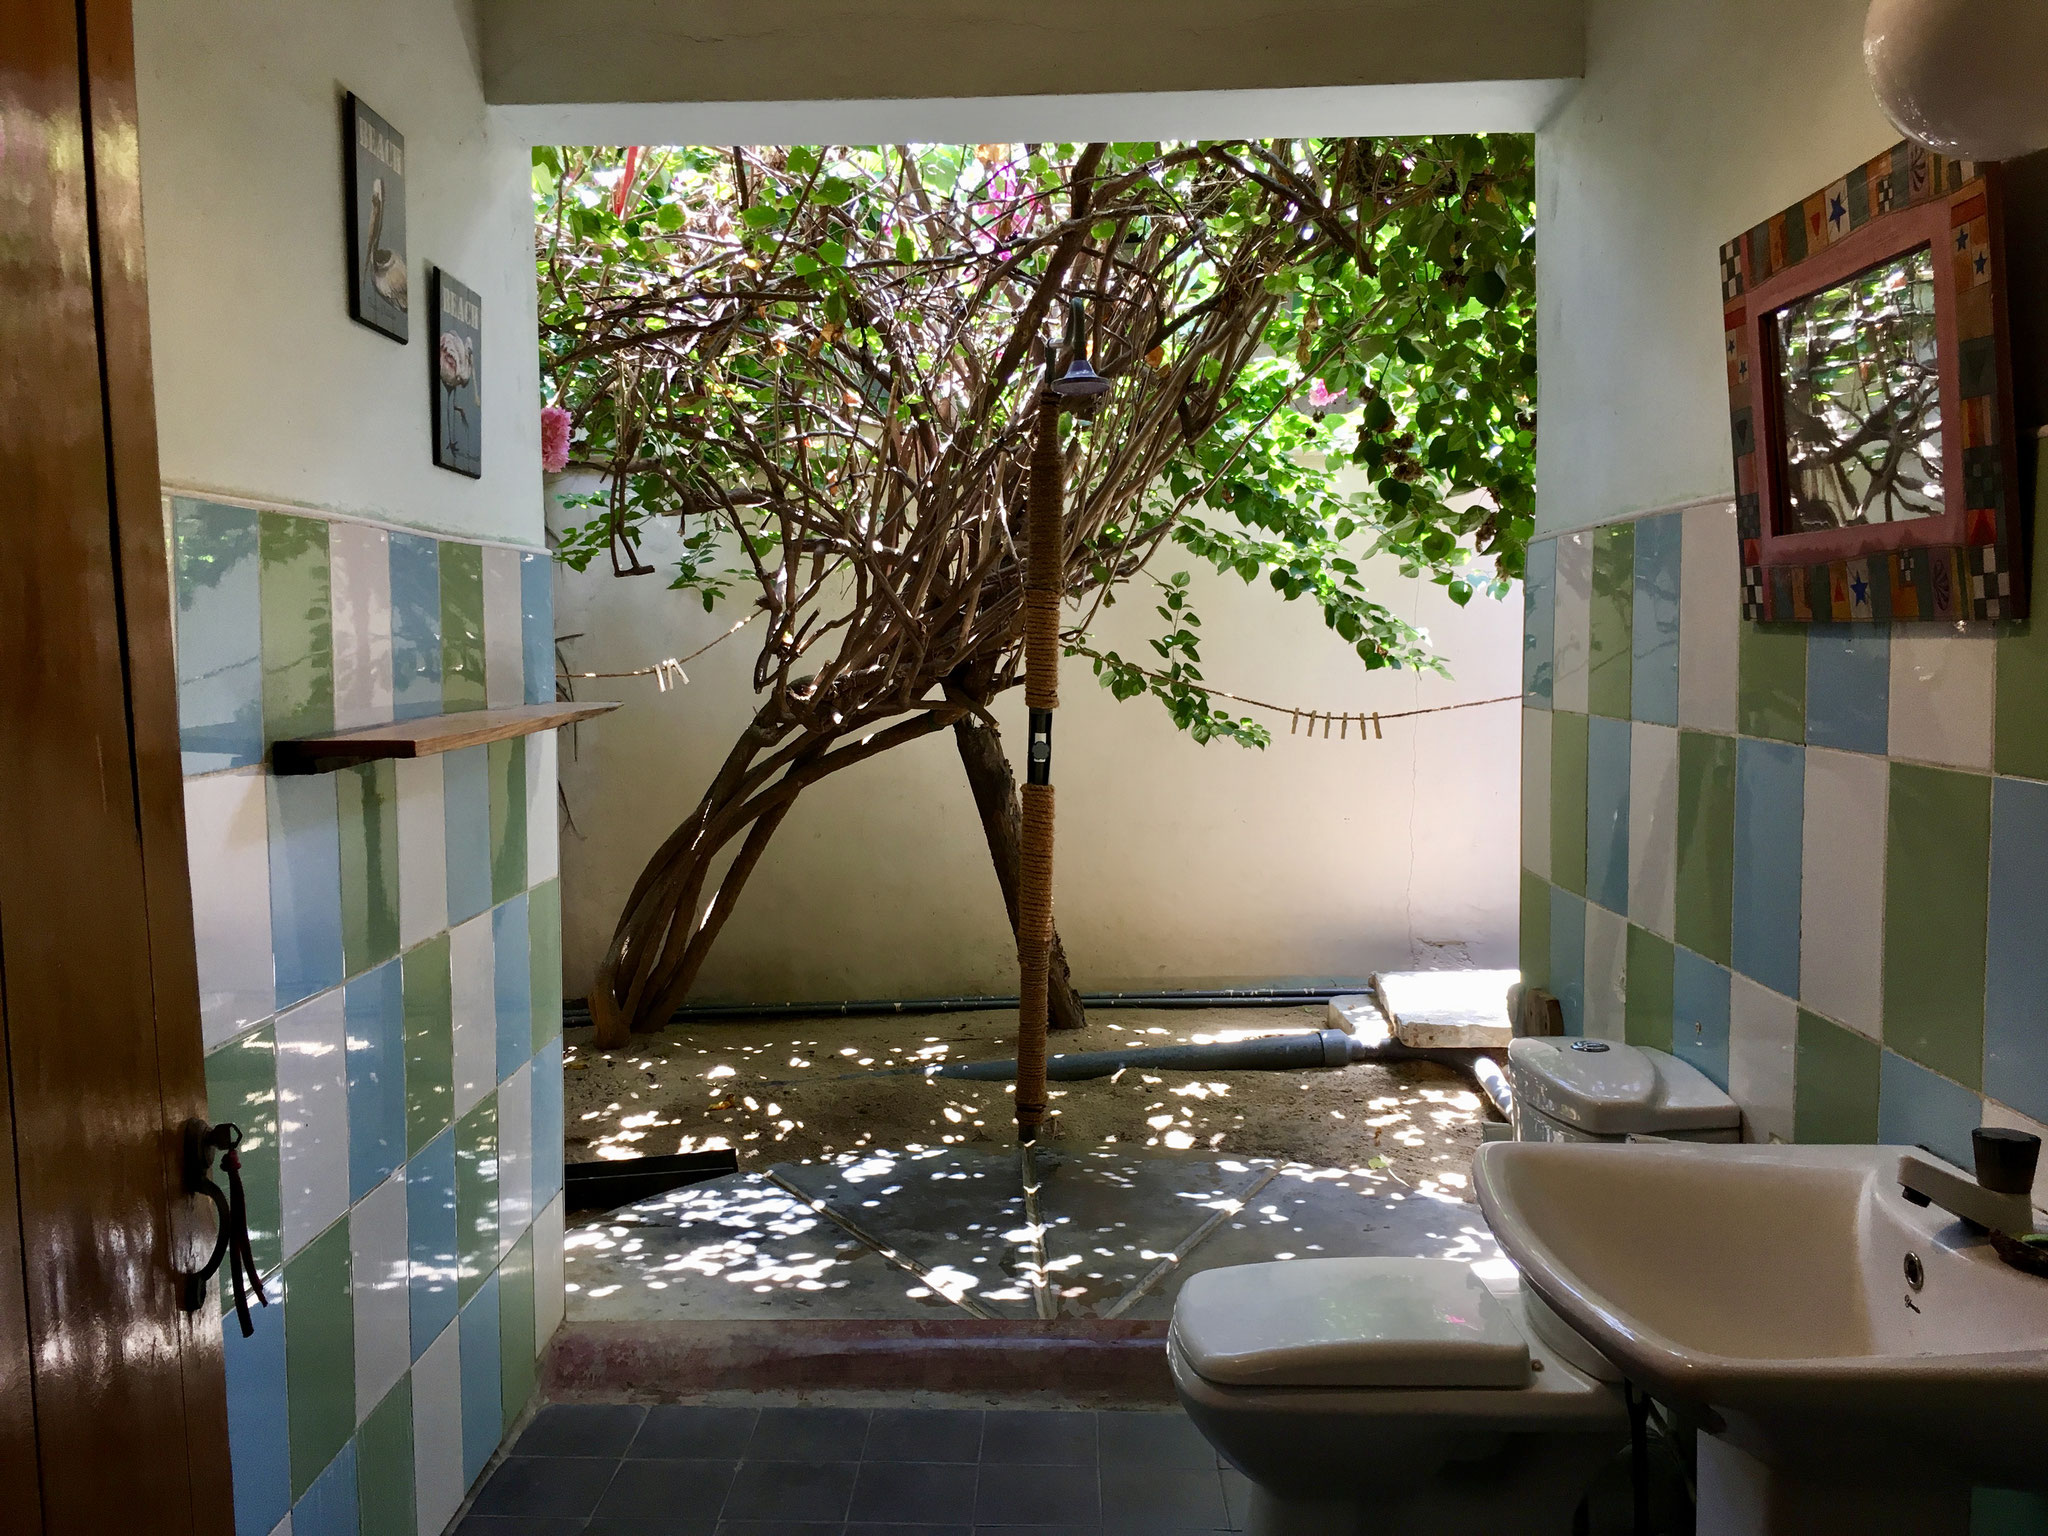 Room 1 / Shared Bathroom